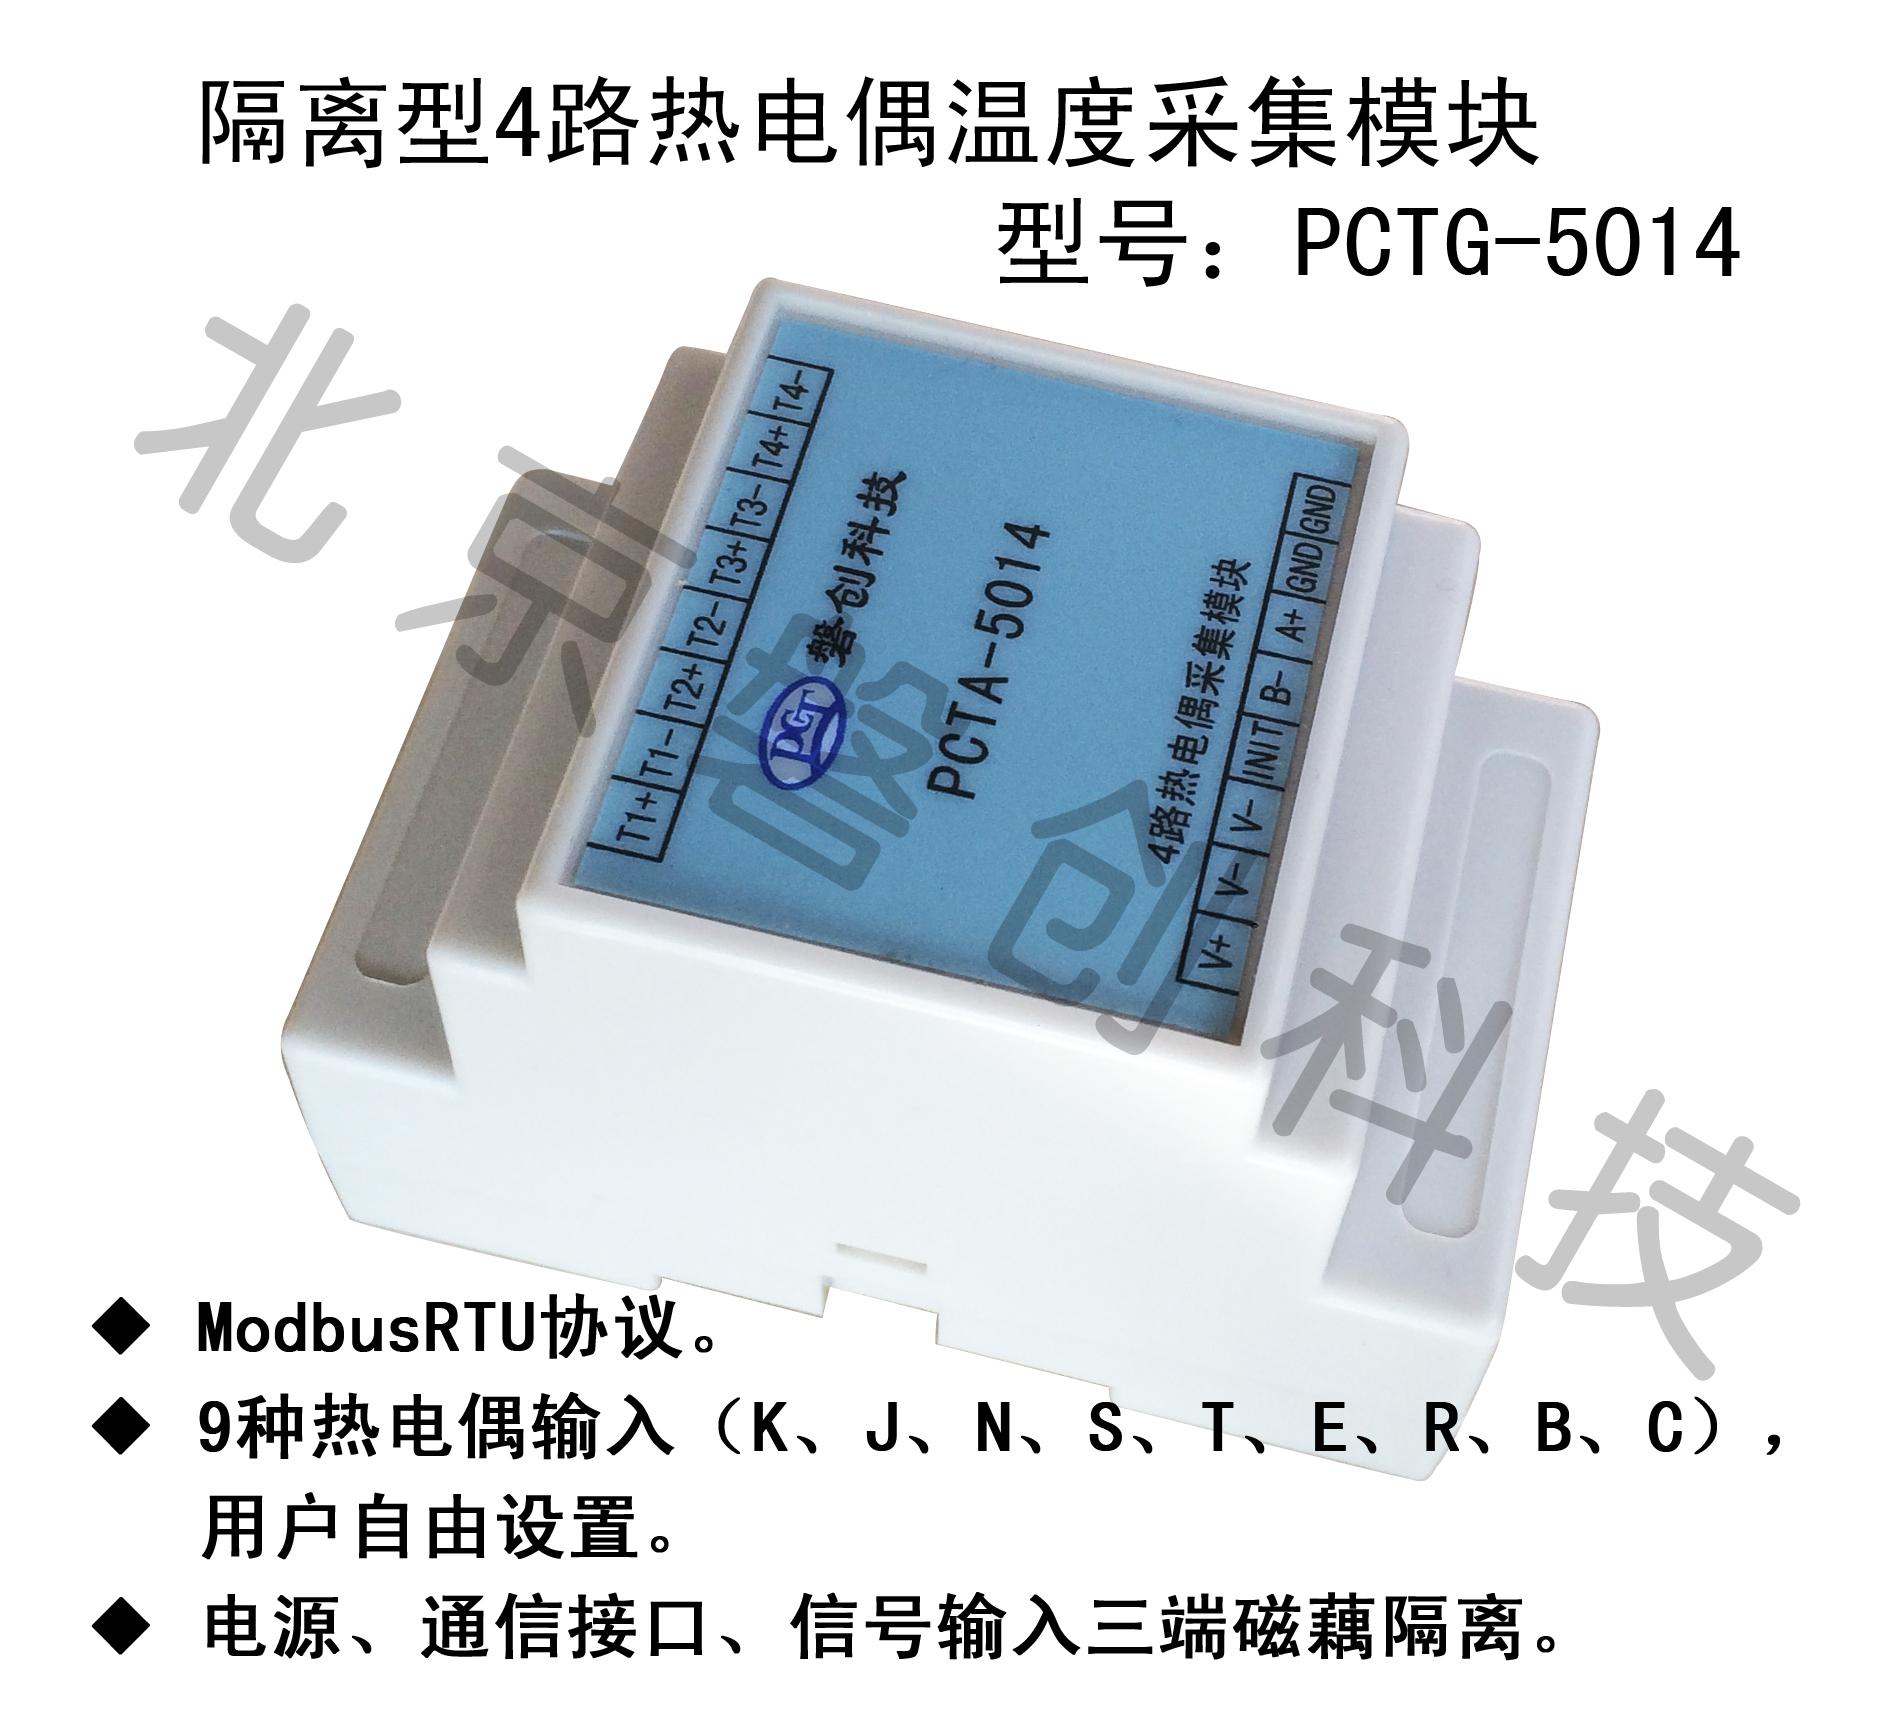 цена на Remote I/o Isolation Type 4 Channel Thermocouple Temperature Transmitter Acquisition Module of Modbus Protocol